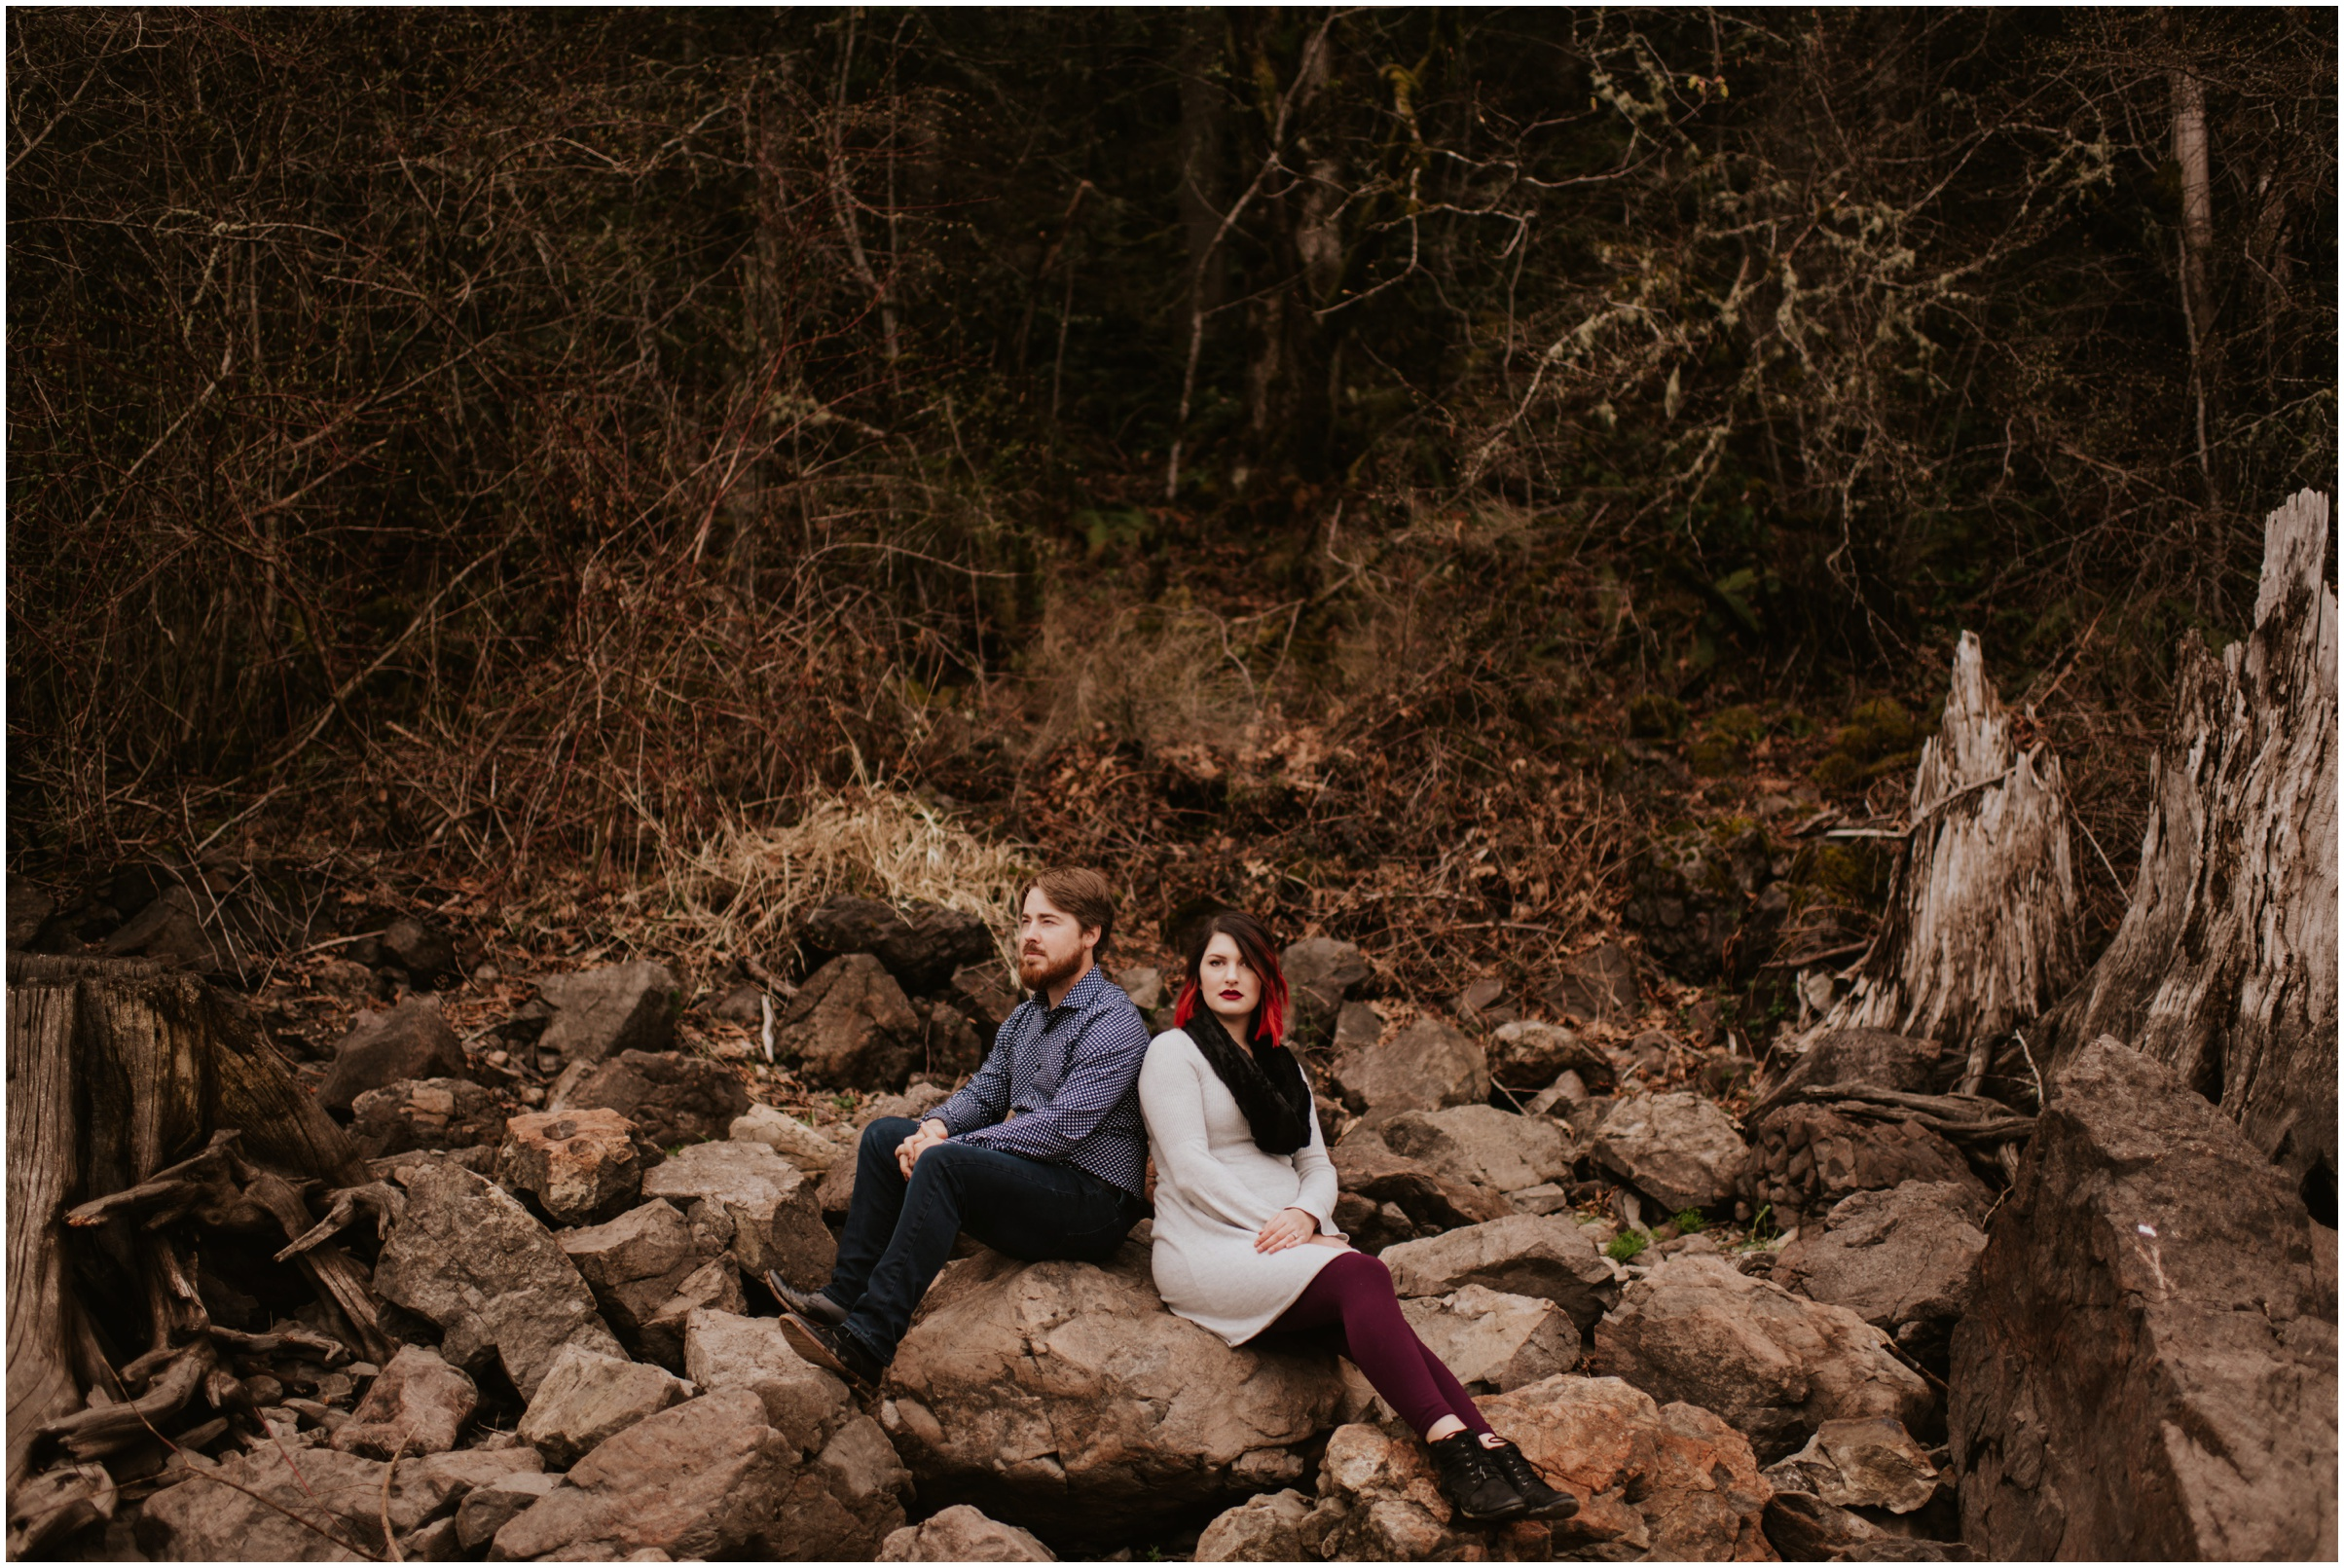 Couple modeling on rocks at Rattlesnake Lake, WA | Engagement Photographer Seattle www.riversandroadsphotography.com